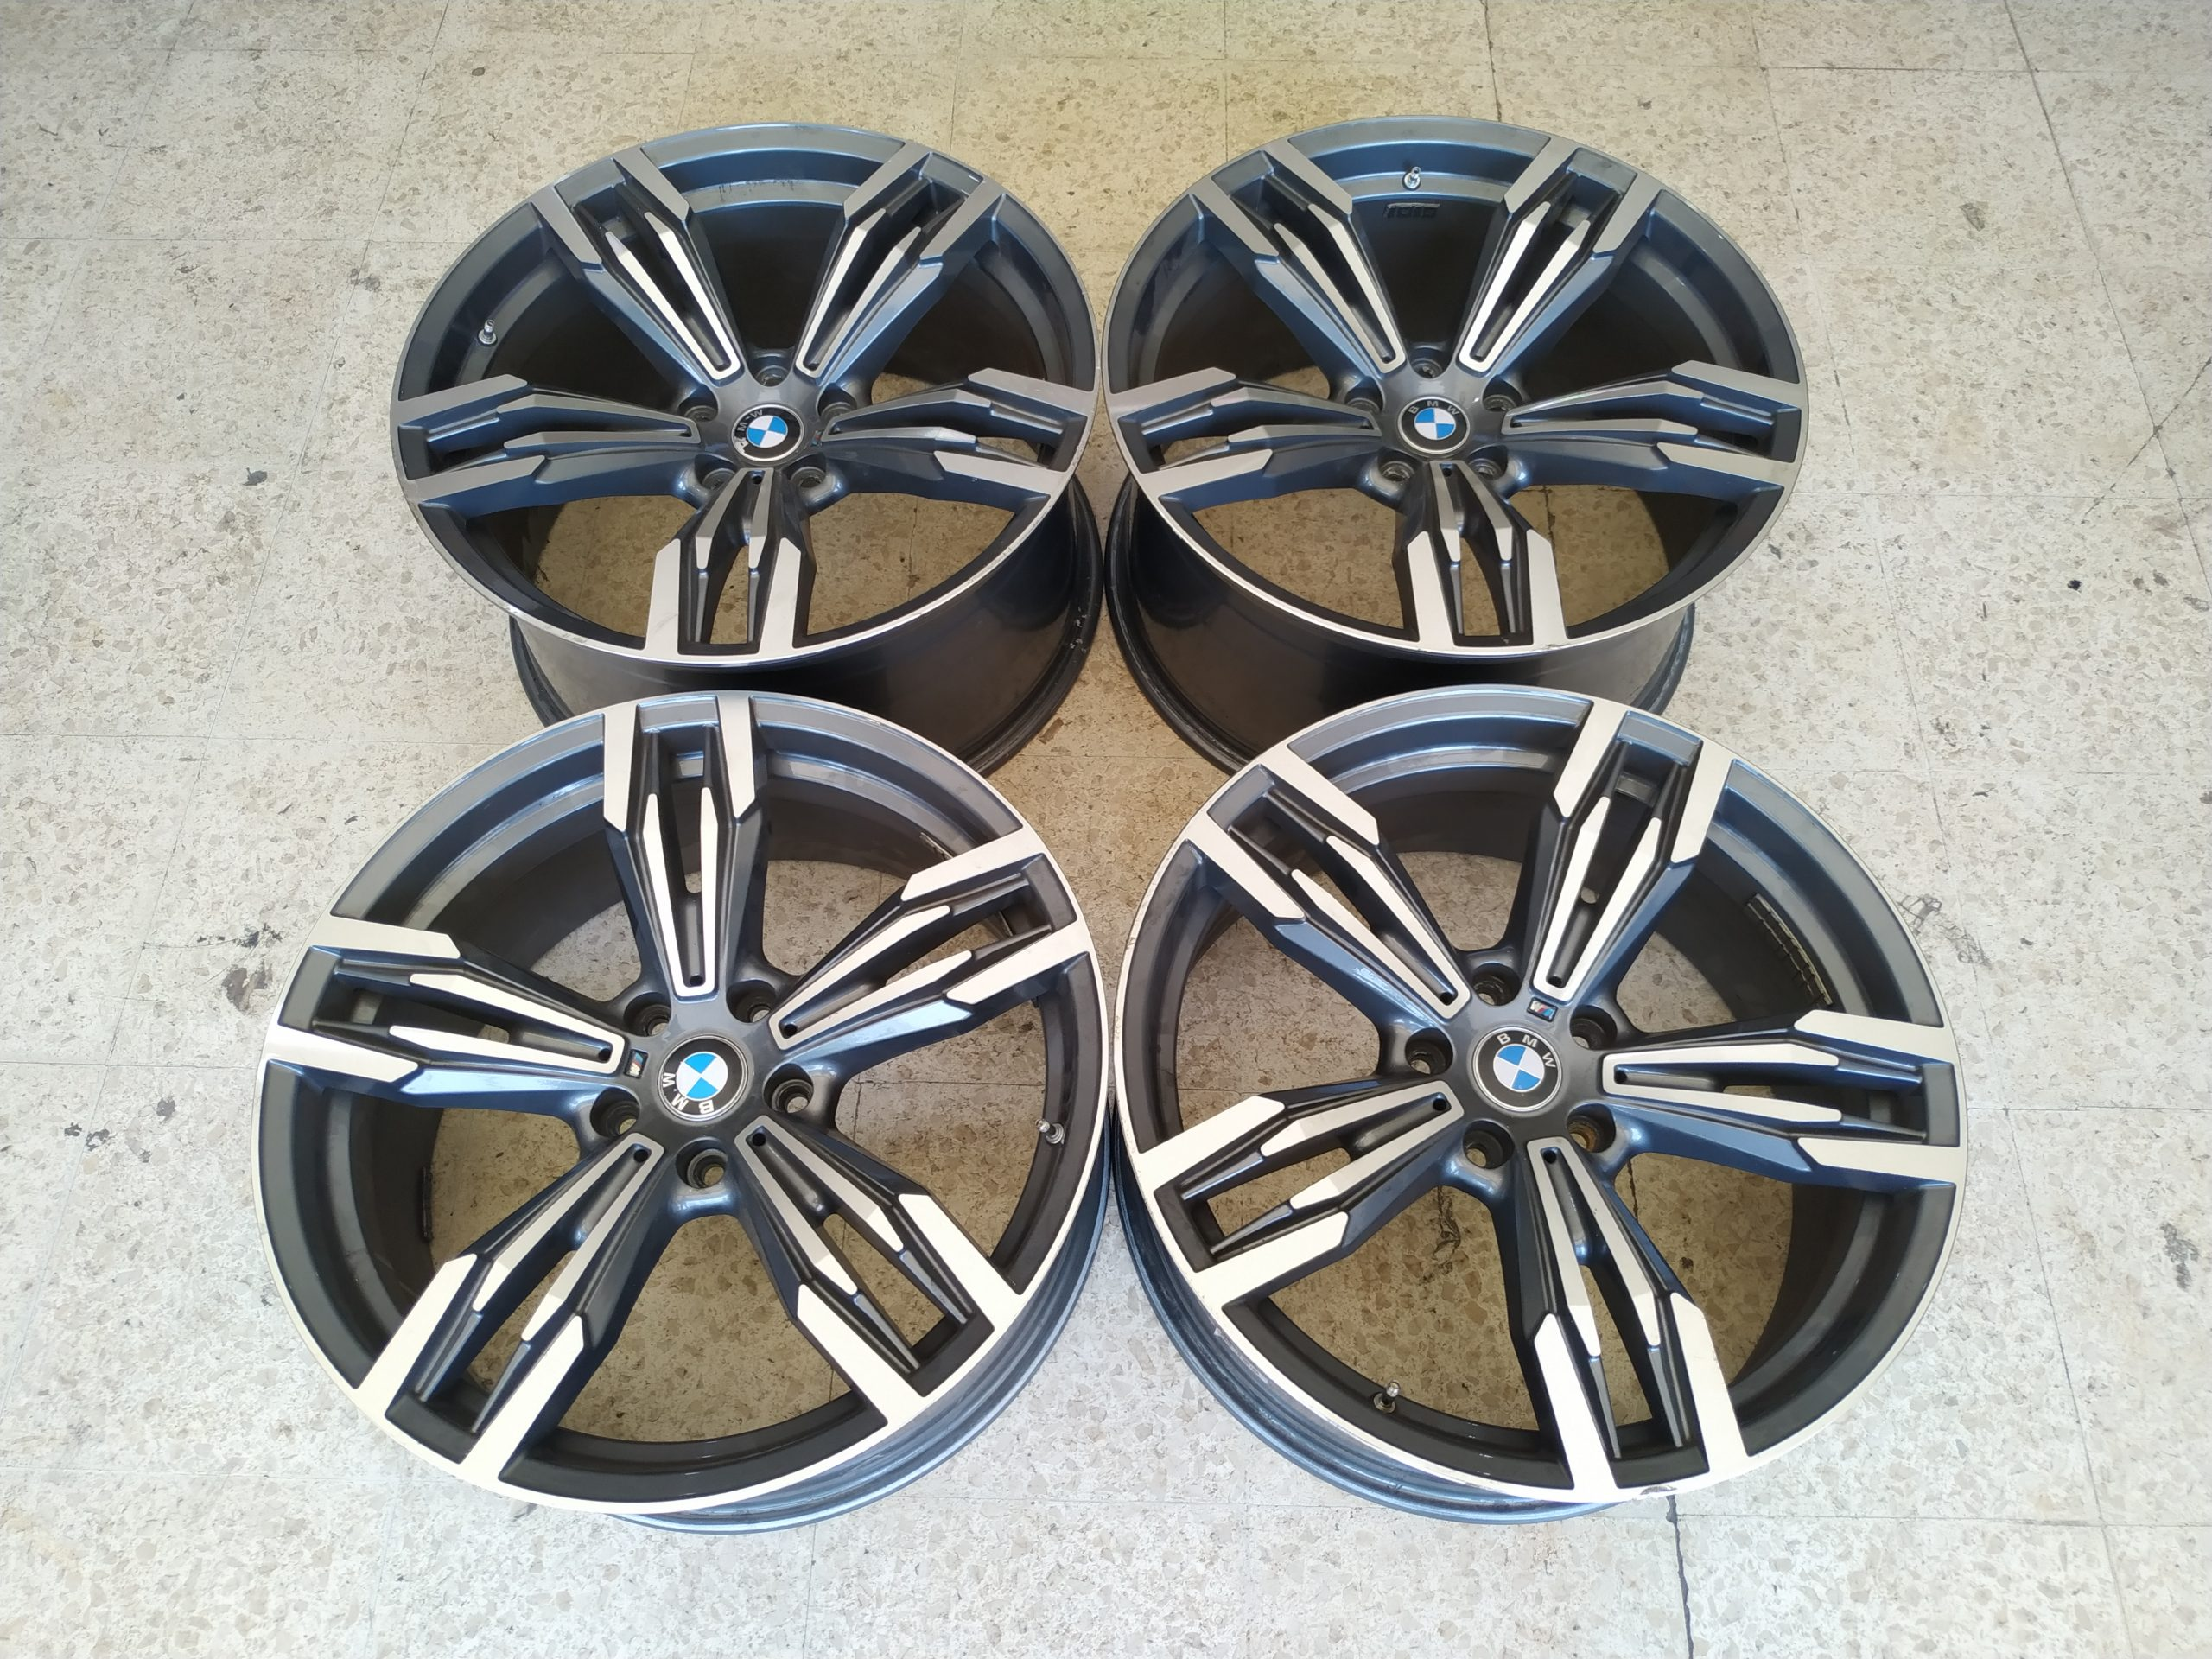 Dijual Velg BMW M6 Ring 20 Racing Elegant